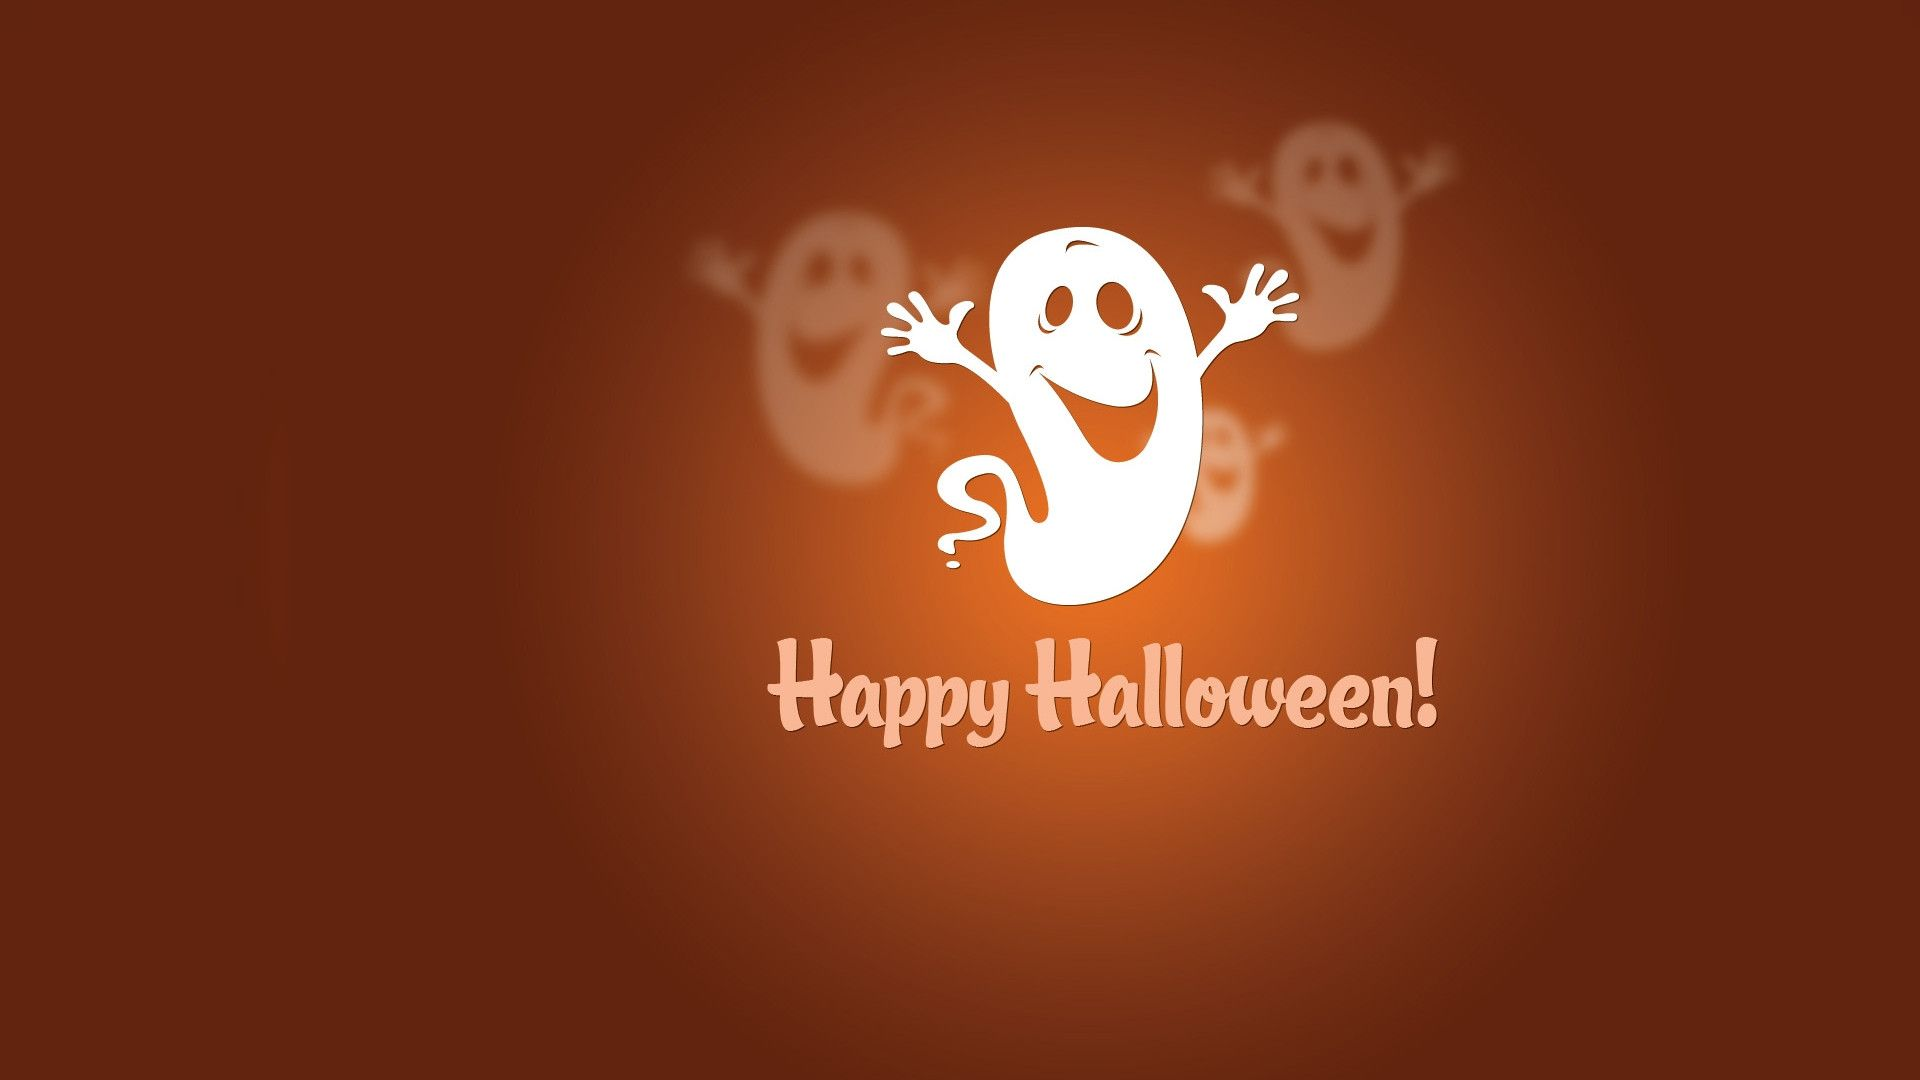 Girly Cute Halloween Wallpaper.Cute Girly Halloween Wallpapers Top Free Cute Girly Halloween